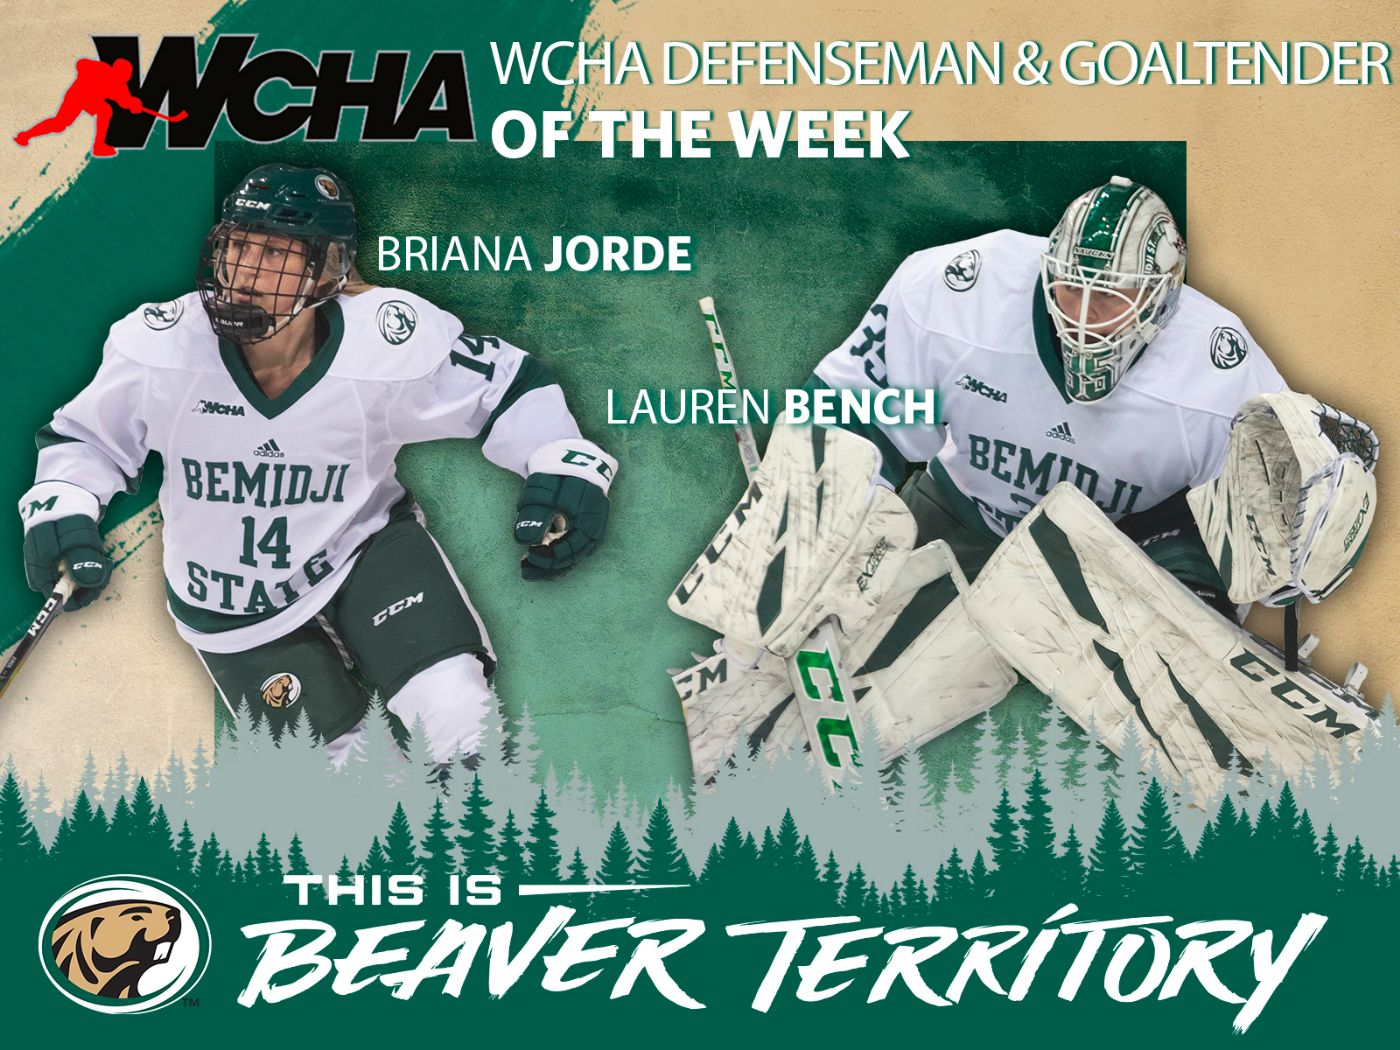 Jorde and Bench awarded with Player of the Week honors after series sweep